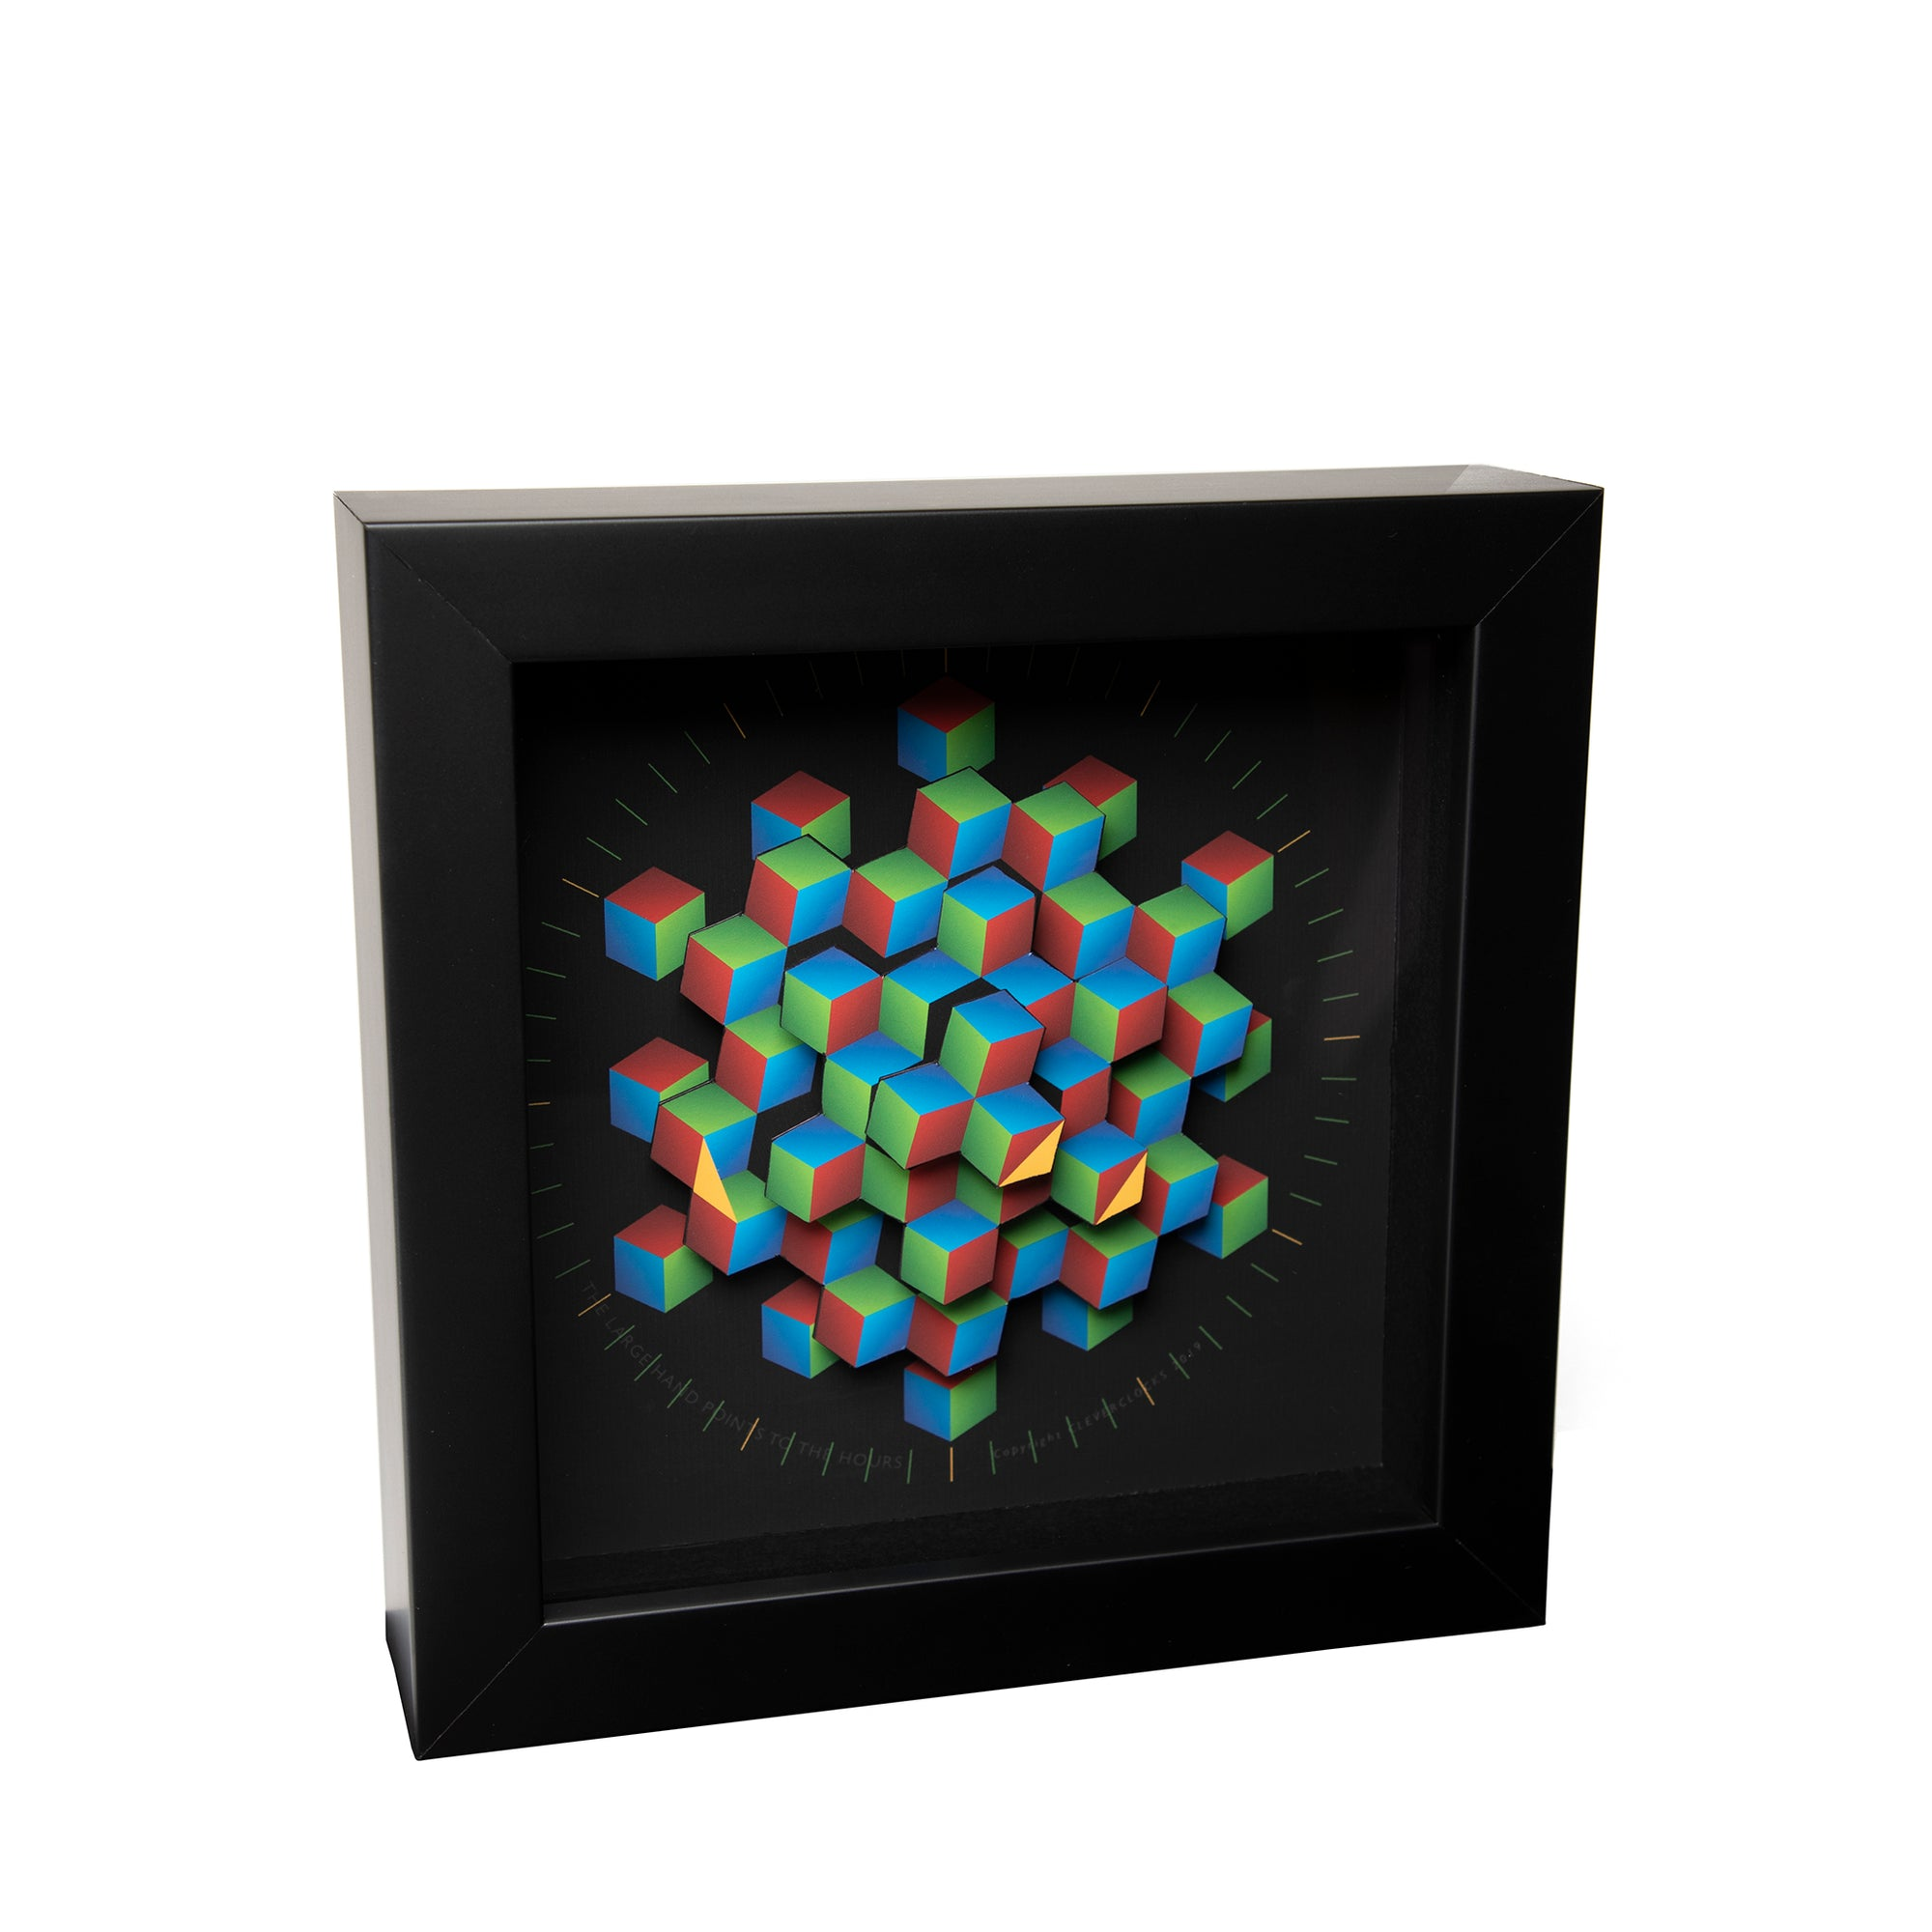 Colorful Hexagon Desk Clock - 9"